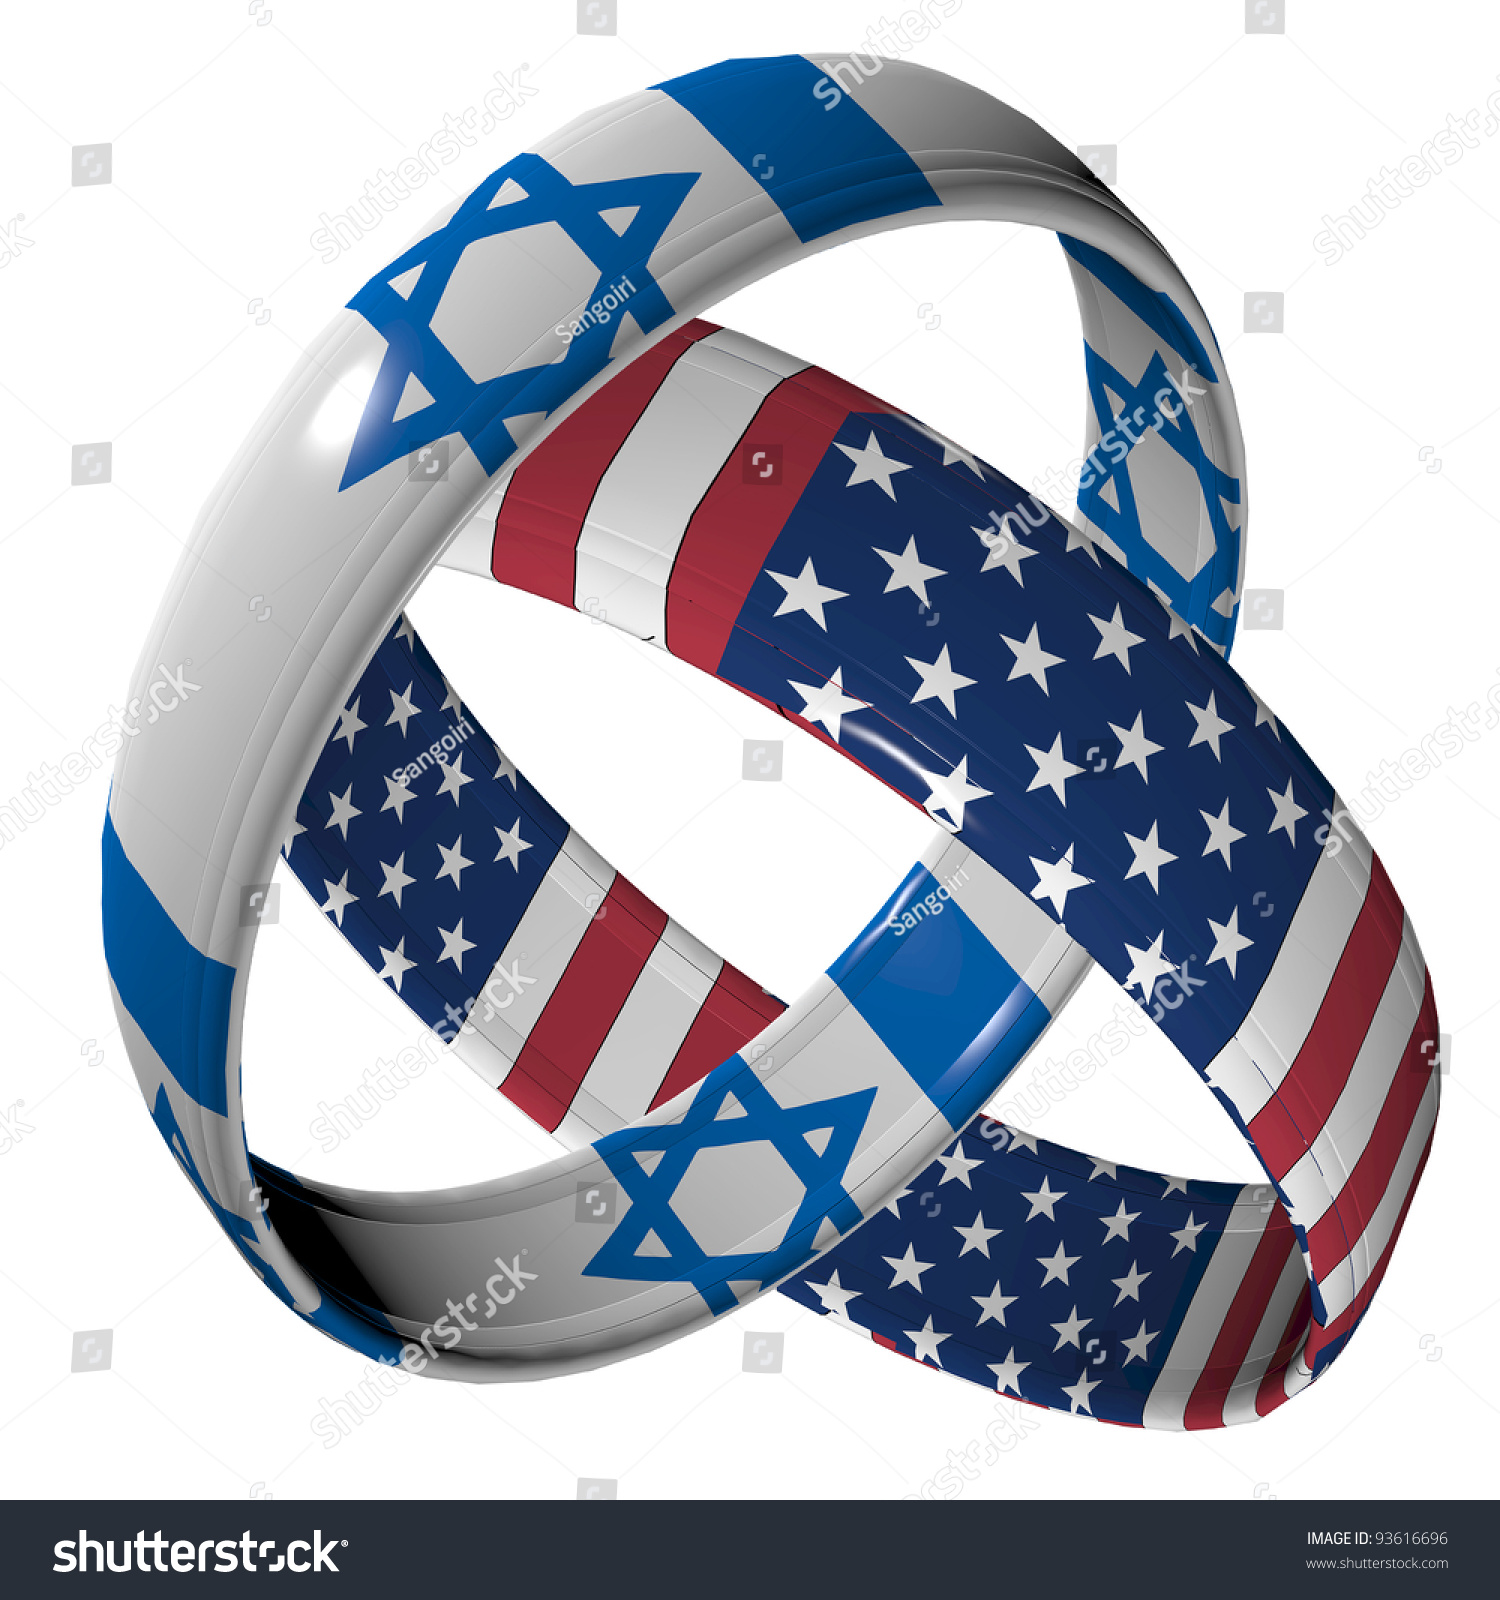 america relationship with israel